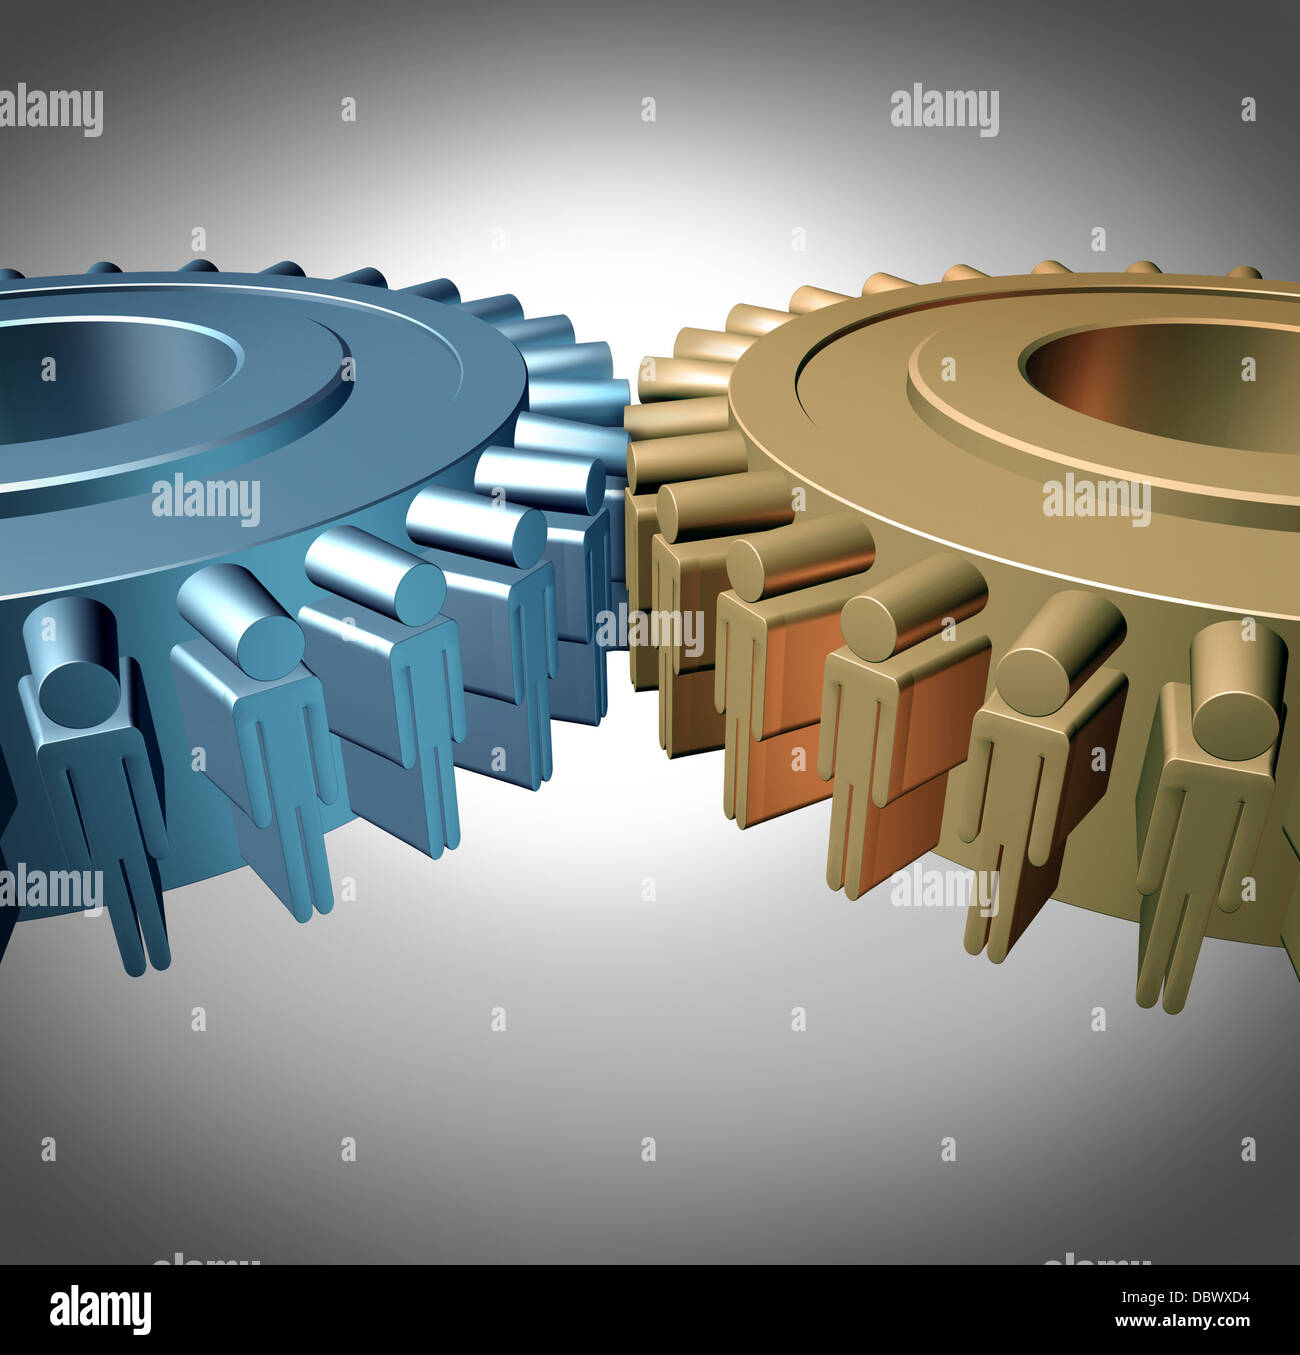 Business Teamwork concept with two merged gears or cog wheels shaped as business people icons in a meeting connected - Stock Image